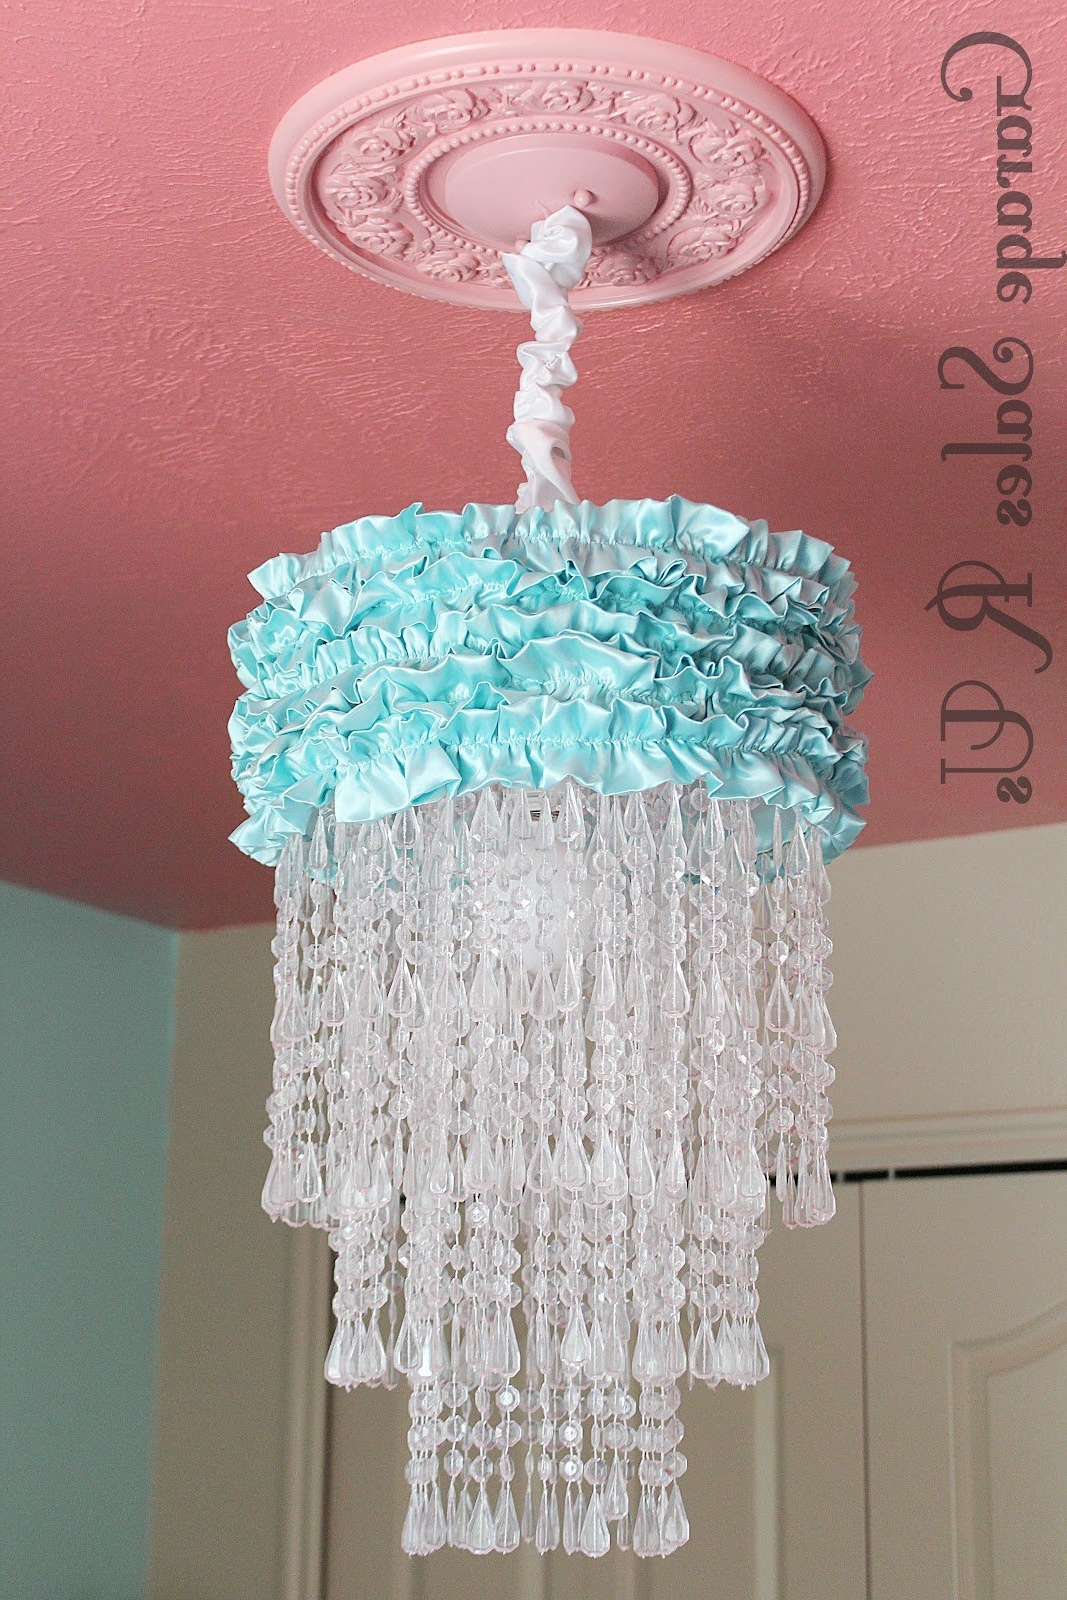 Diy Turquoise Beaded Chandeliers Regarding Latest 25 Diy Chandelier Ideas (Gallery 14 of 20)